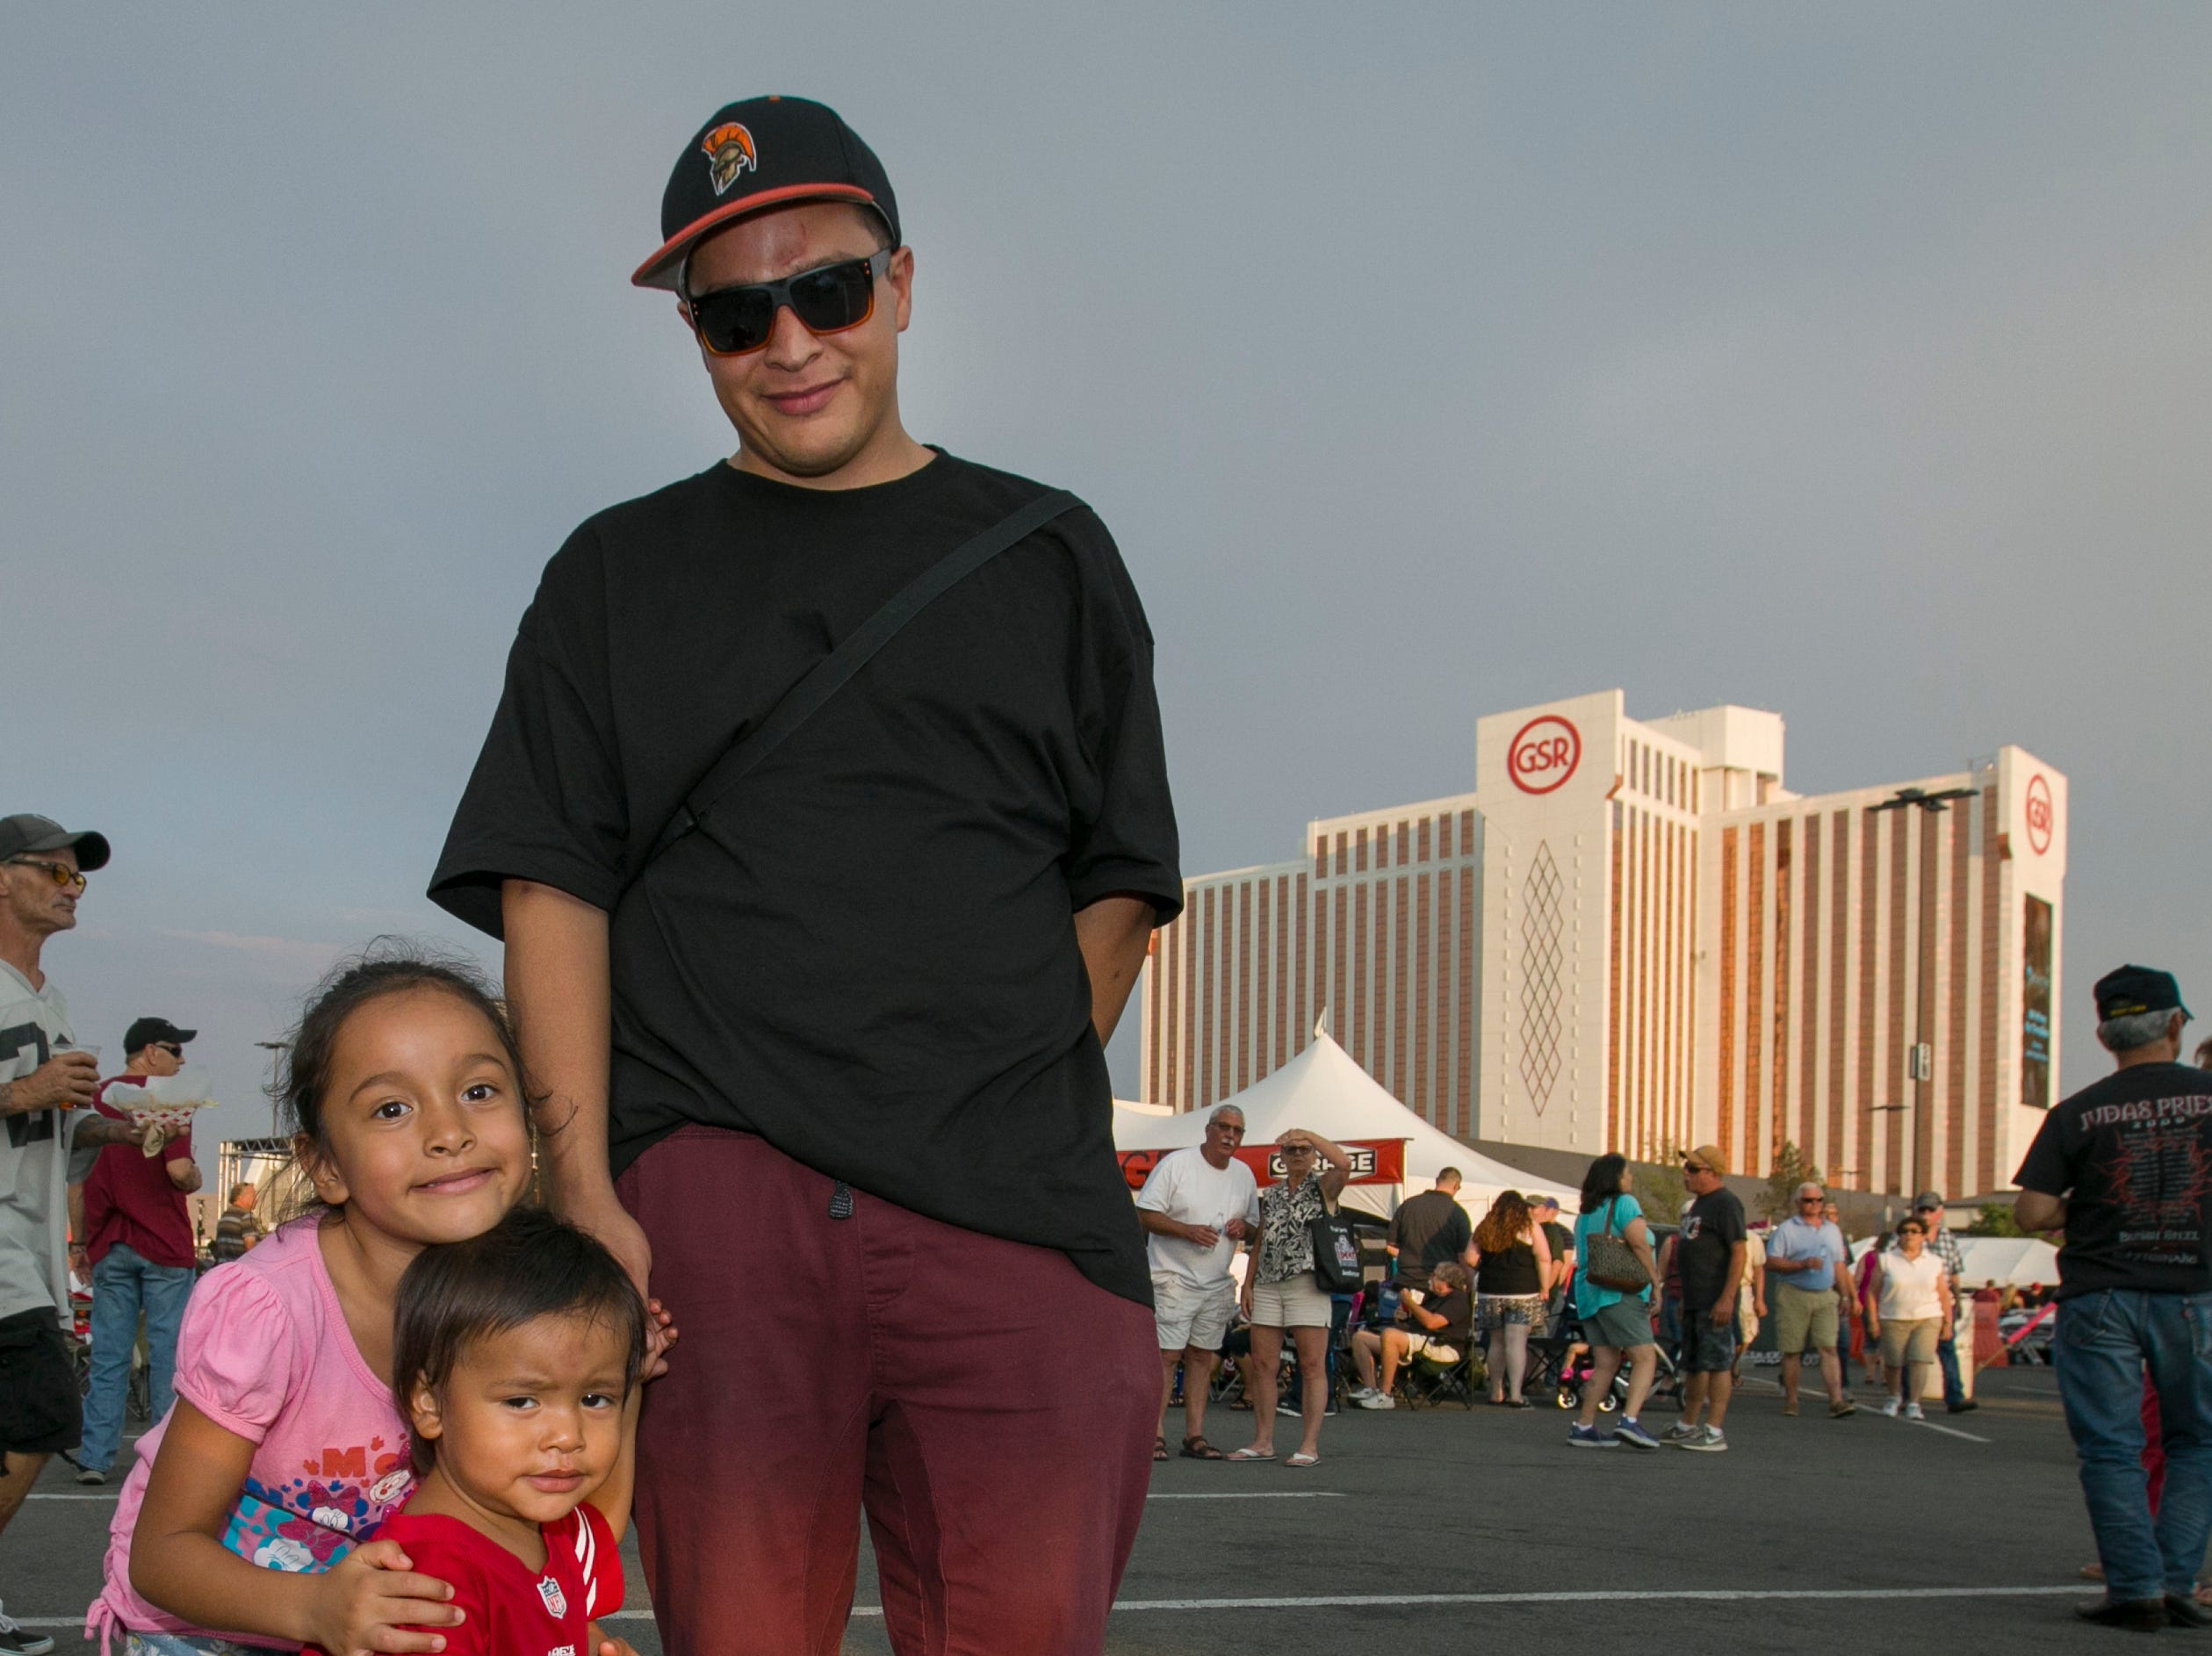 The Saldana family during the Starship Concert during Hot August Nights at the Grand Sierra Resort on Friday, August 10, 2018.